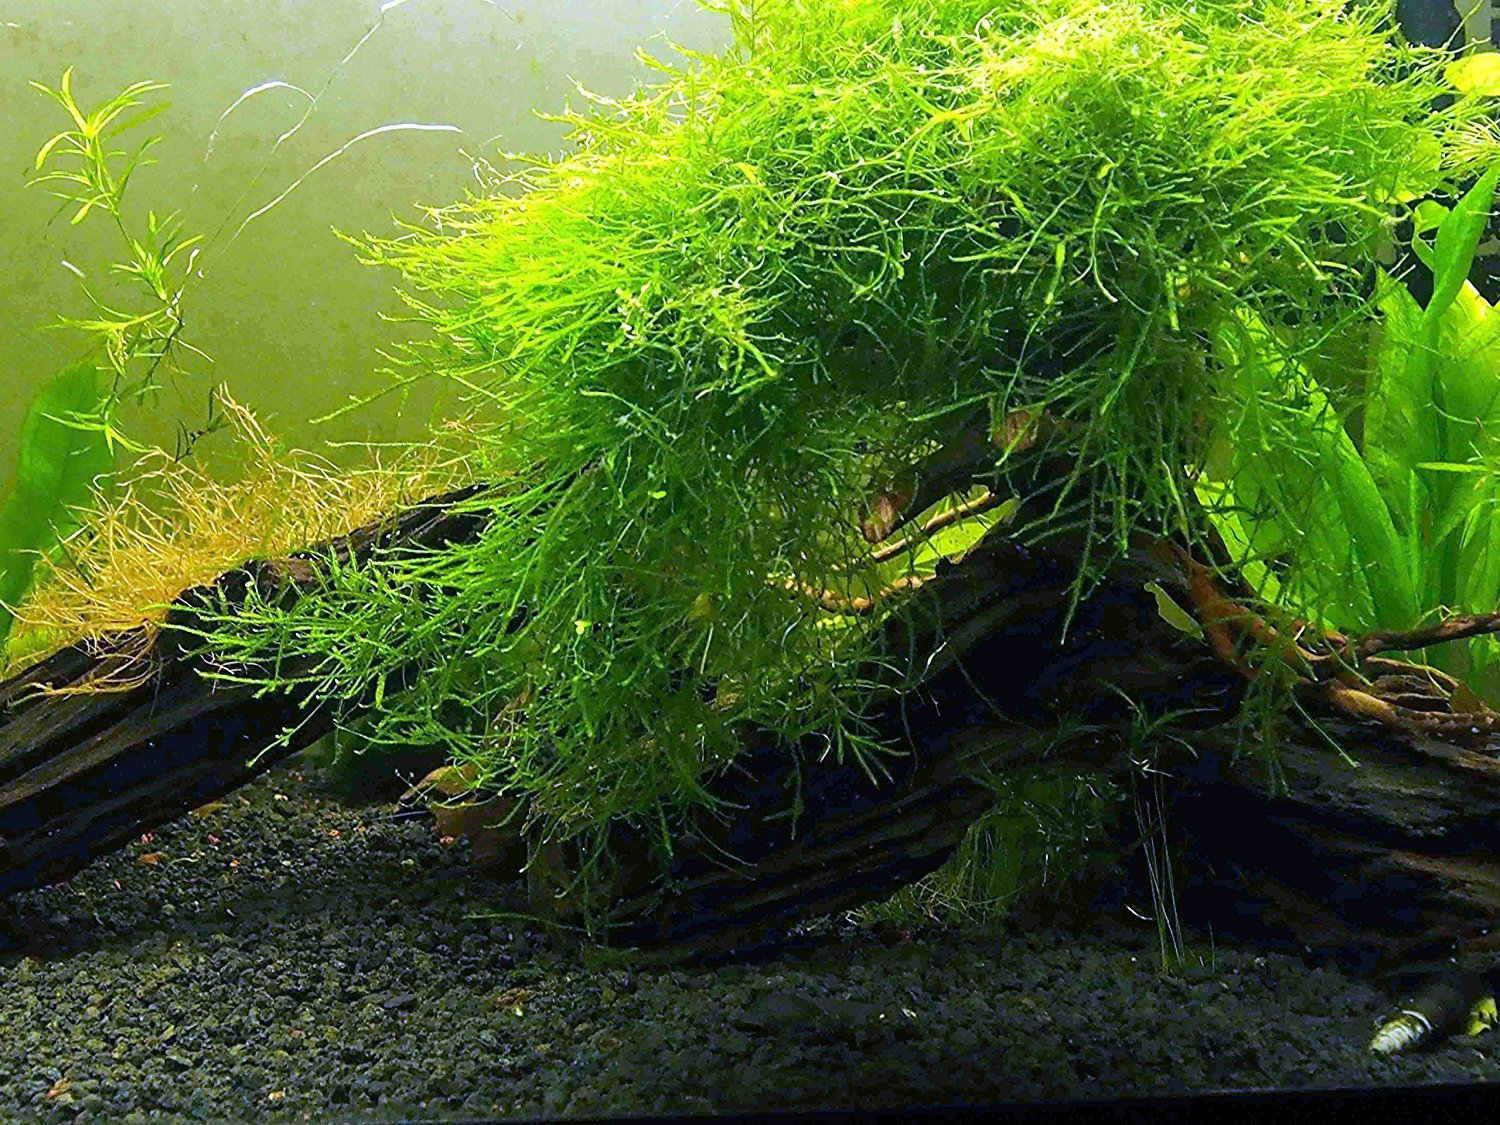 About Aquarium Plants and Java Moss